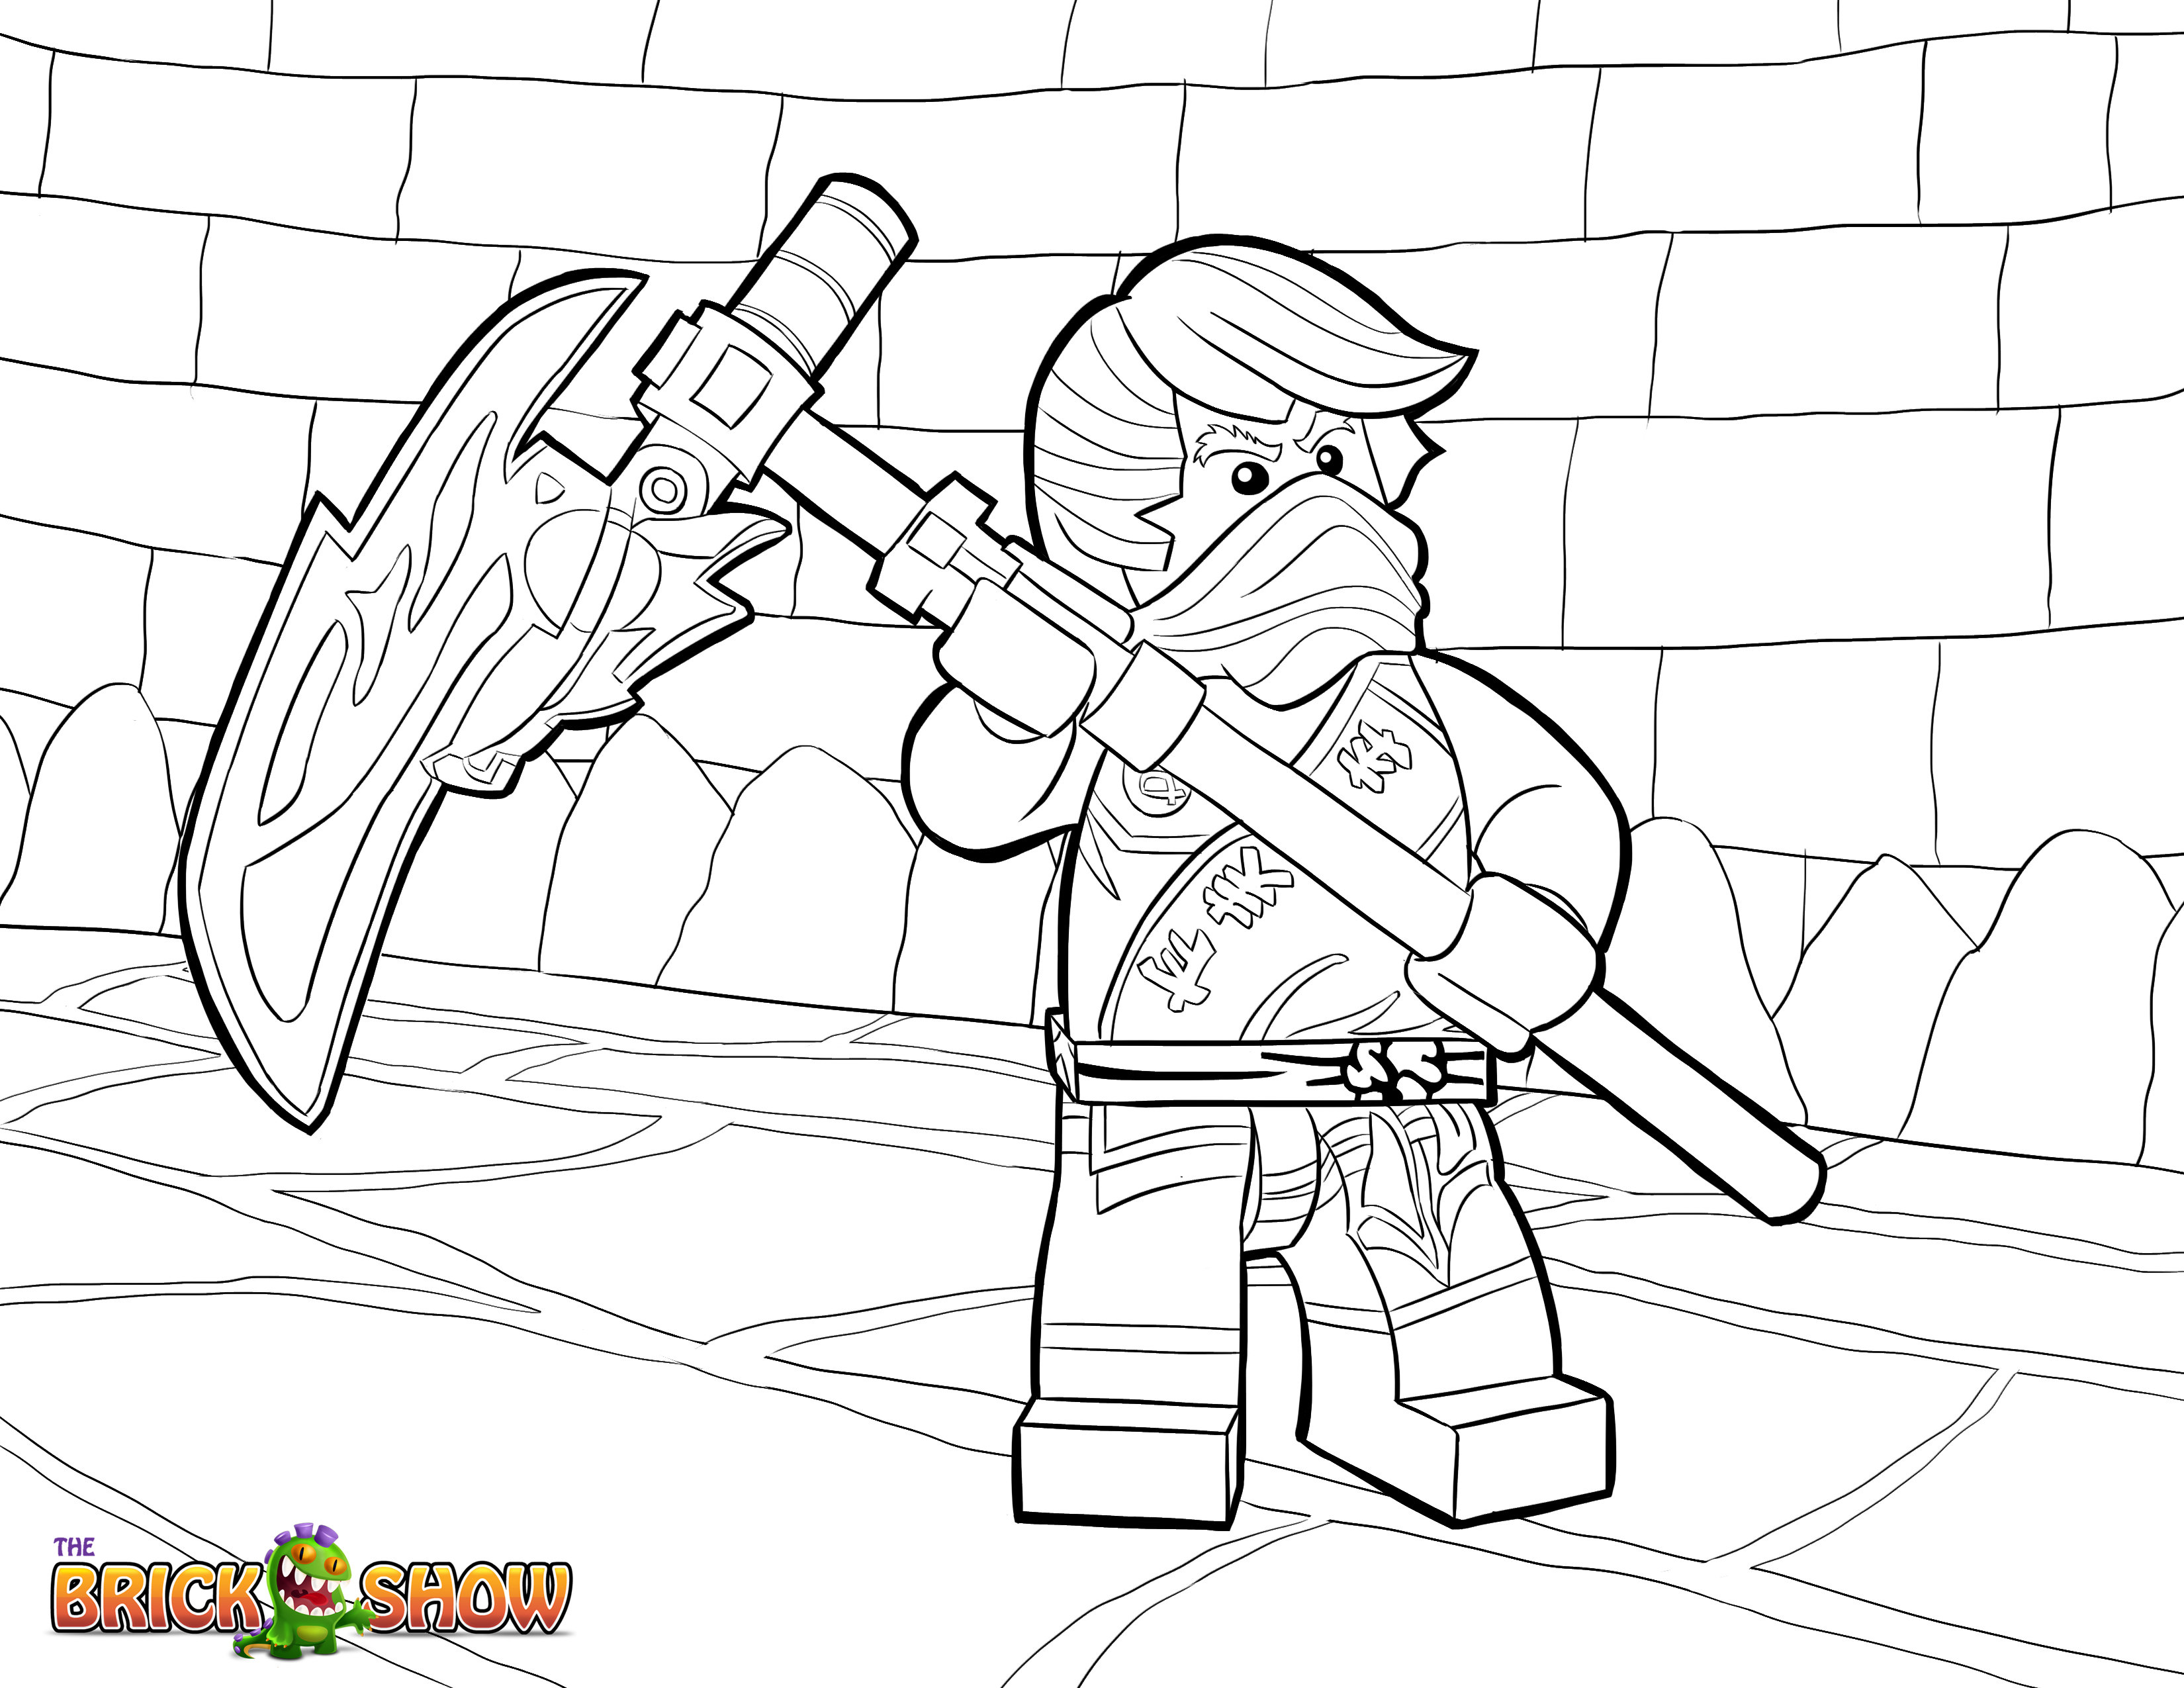 Ninjago Coloring Pages For Kids At Getdrawings Com Free For